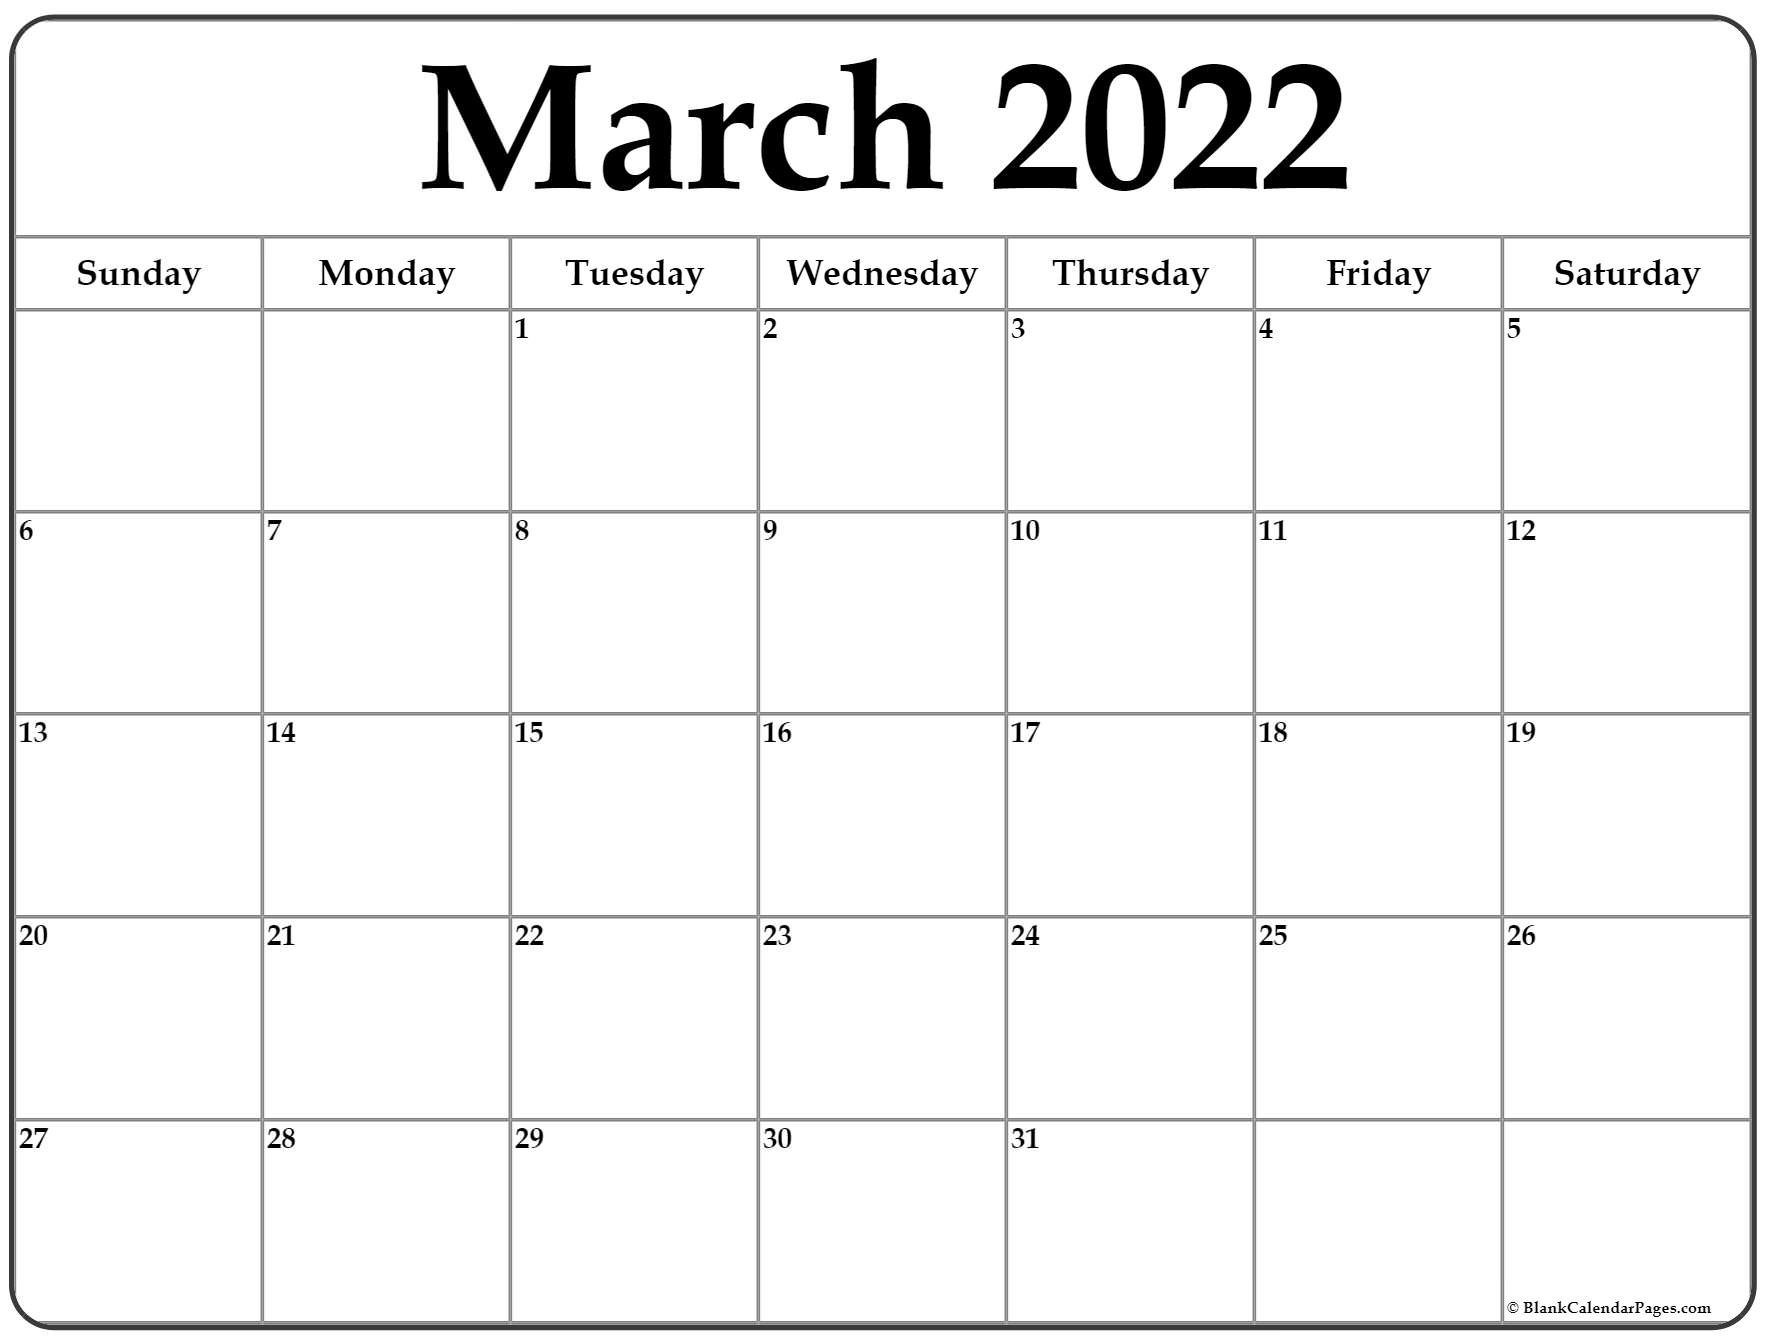 With the help of this printable january 2022 calendar itll be easier to rearrange your activities plans and meetings also. March 2022 calendar | free printable calendar templates